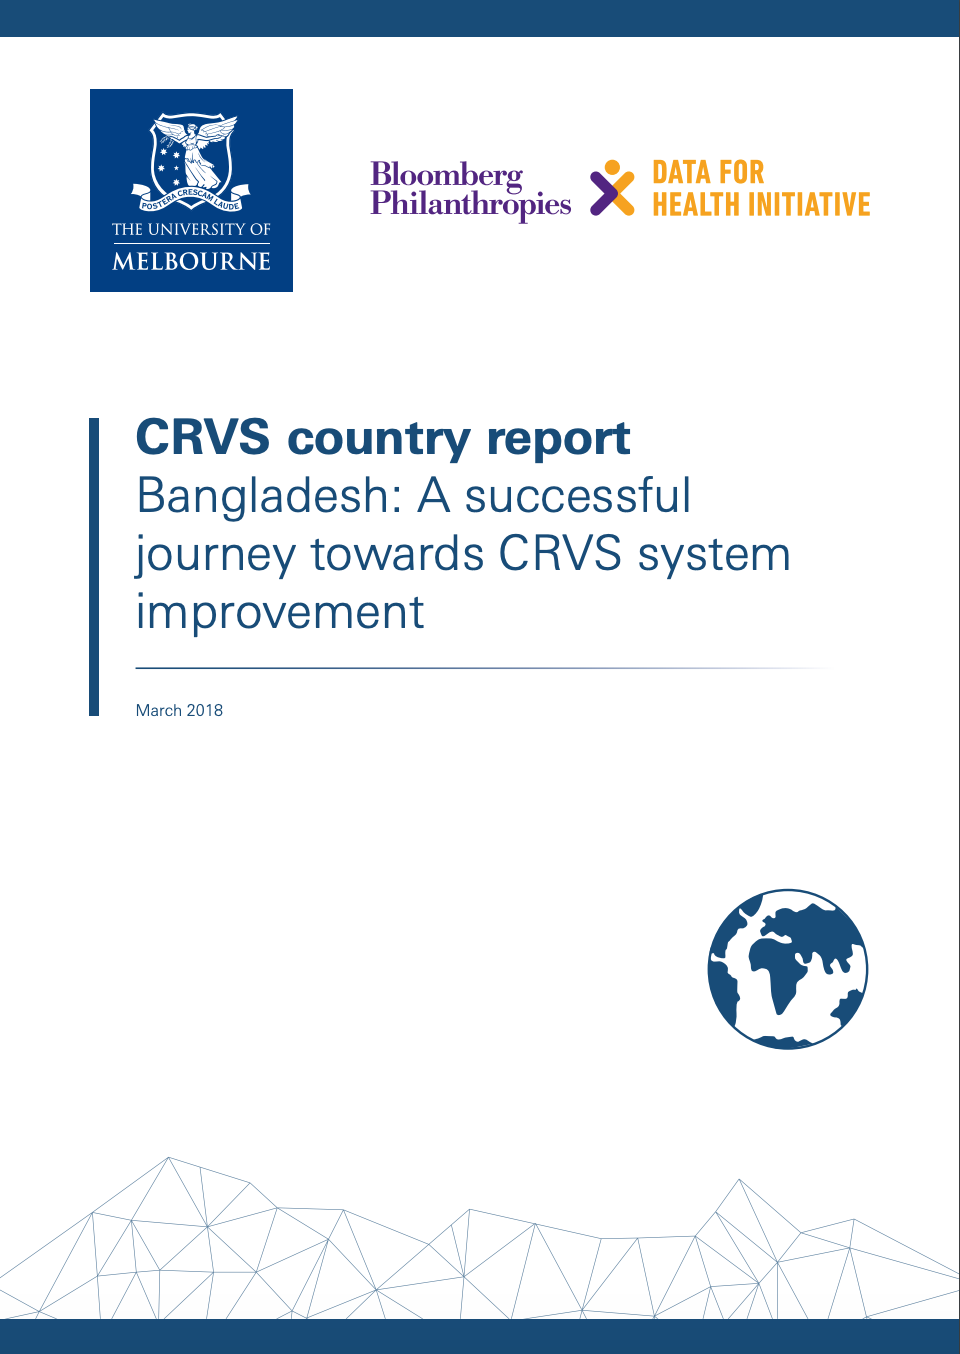 CRVS country report Bangladesh: A successful journey towards CRVS system improvement thumbnail